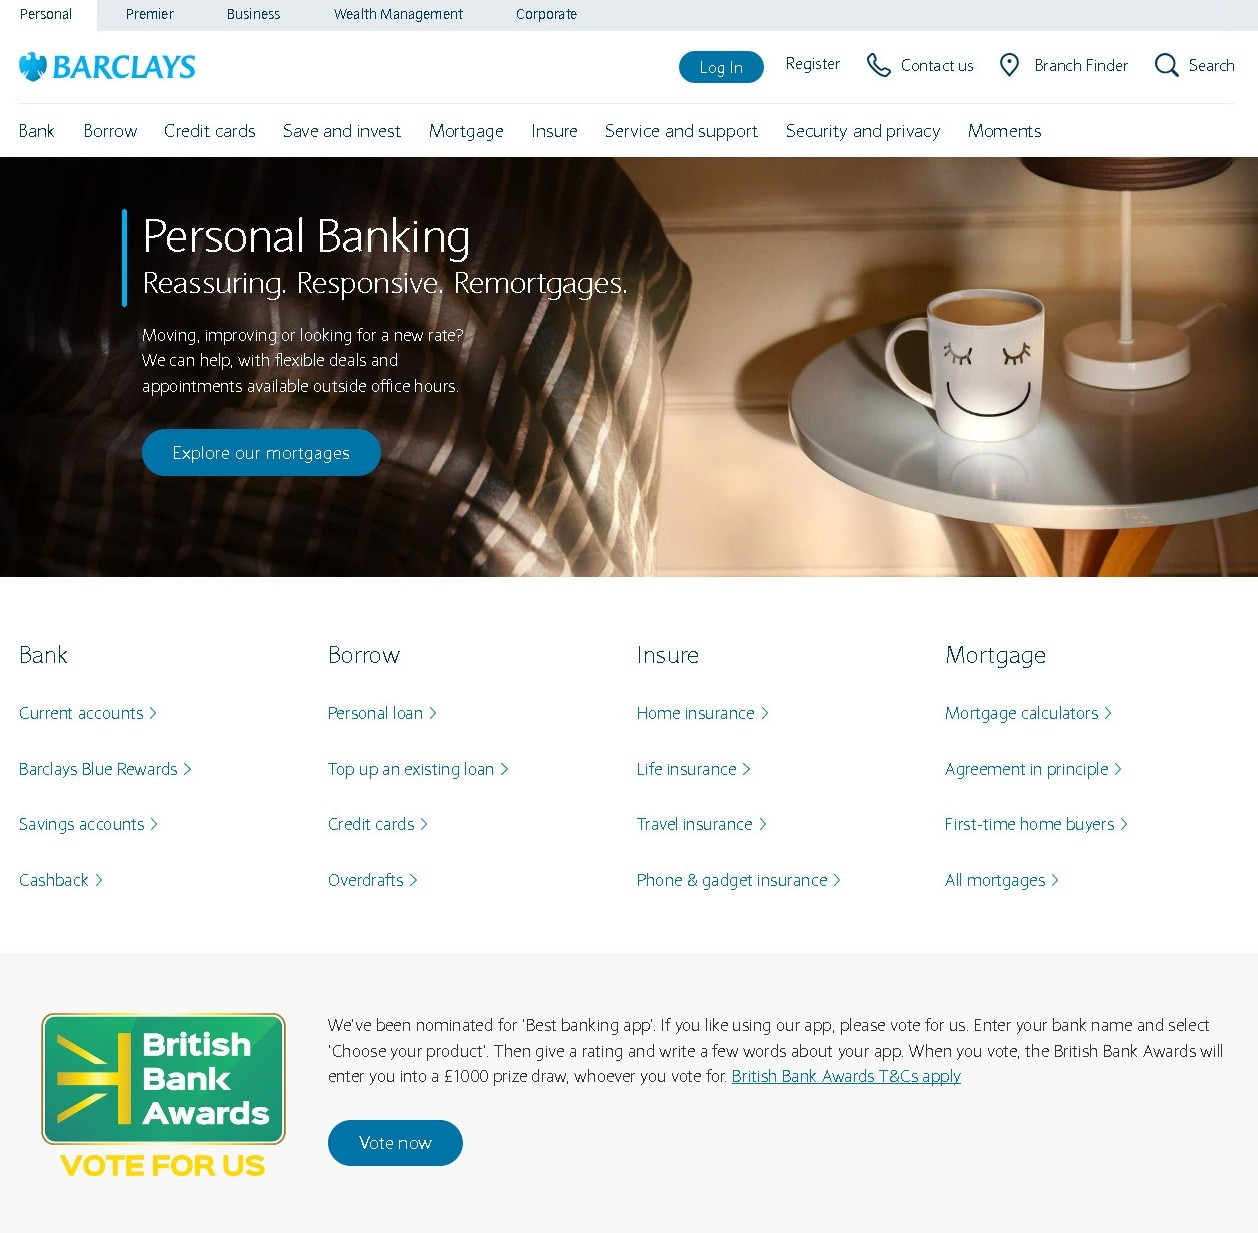 Personal banking Barclays